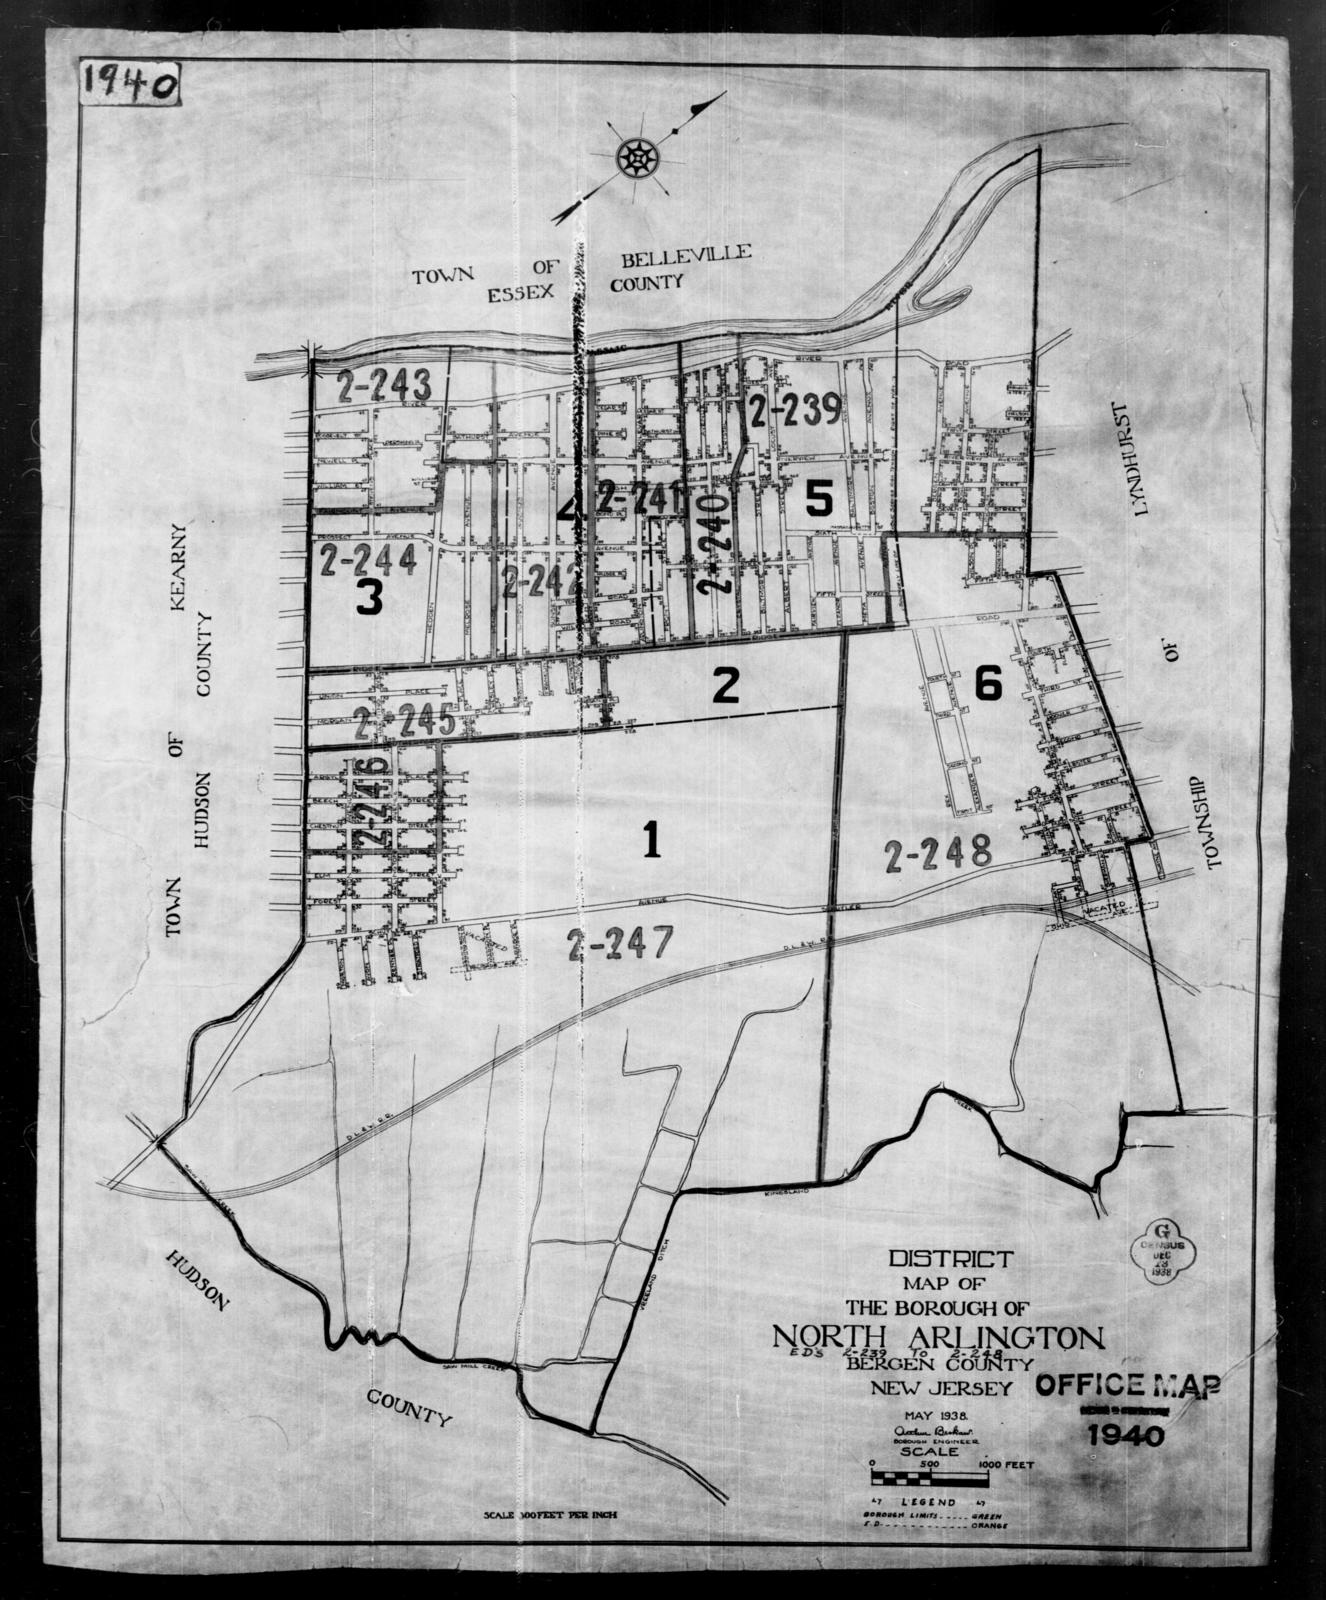 1940 Census Enumeration District Maps - New Jersey - Bergen ... on morris county, burlington county, somerset nj map, oakland nj map, richmond nj map, branch brook park nj map, orange county ny map, sussex county, waterloo village nj map, edgewater neighborhood chicago map, river edge nj map, sparta township nj map, independence township nj map, passaic county, radburn nj map, hudson county, oradell nj map, middlesex county, mercer county, palisades interstate parkway nj map, musconetcong river nj map, somerset county, westchester county, union county map, hunterdon county, essex county, rockland county, monmouth county, parsippany nj map, warren county, pittsburgh nj map, greenwich township nj map, maryland nj map, union county, delran township nj map, jersey city,